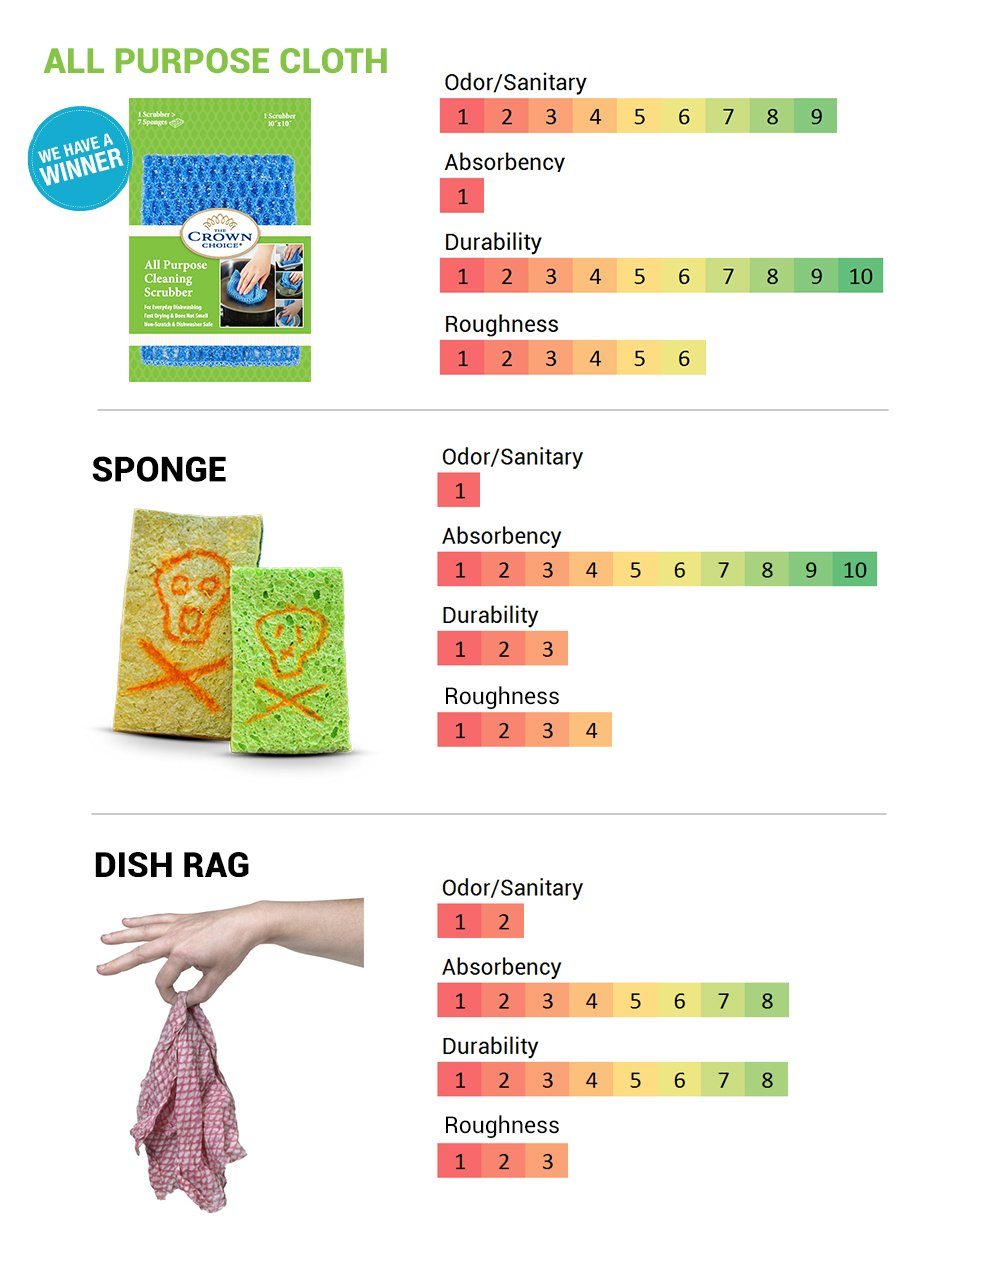 NO ODOR Dish Cloth for All Purpose Dish Washing (3PK) | No Mildew Smell from Sponges, Scrubbers, Wash Cloths, Rags, Brush | Outlast ANY Kitchen Scrubbing Sponge or Cotton Dishcloth by The Crown Choice (Image #3)